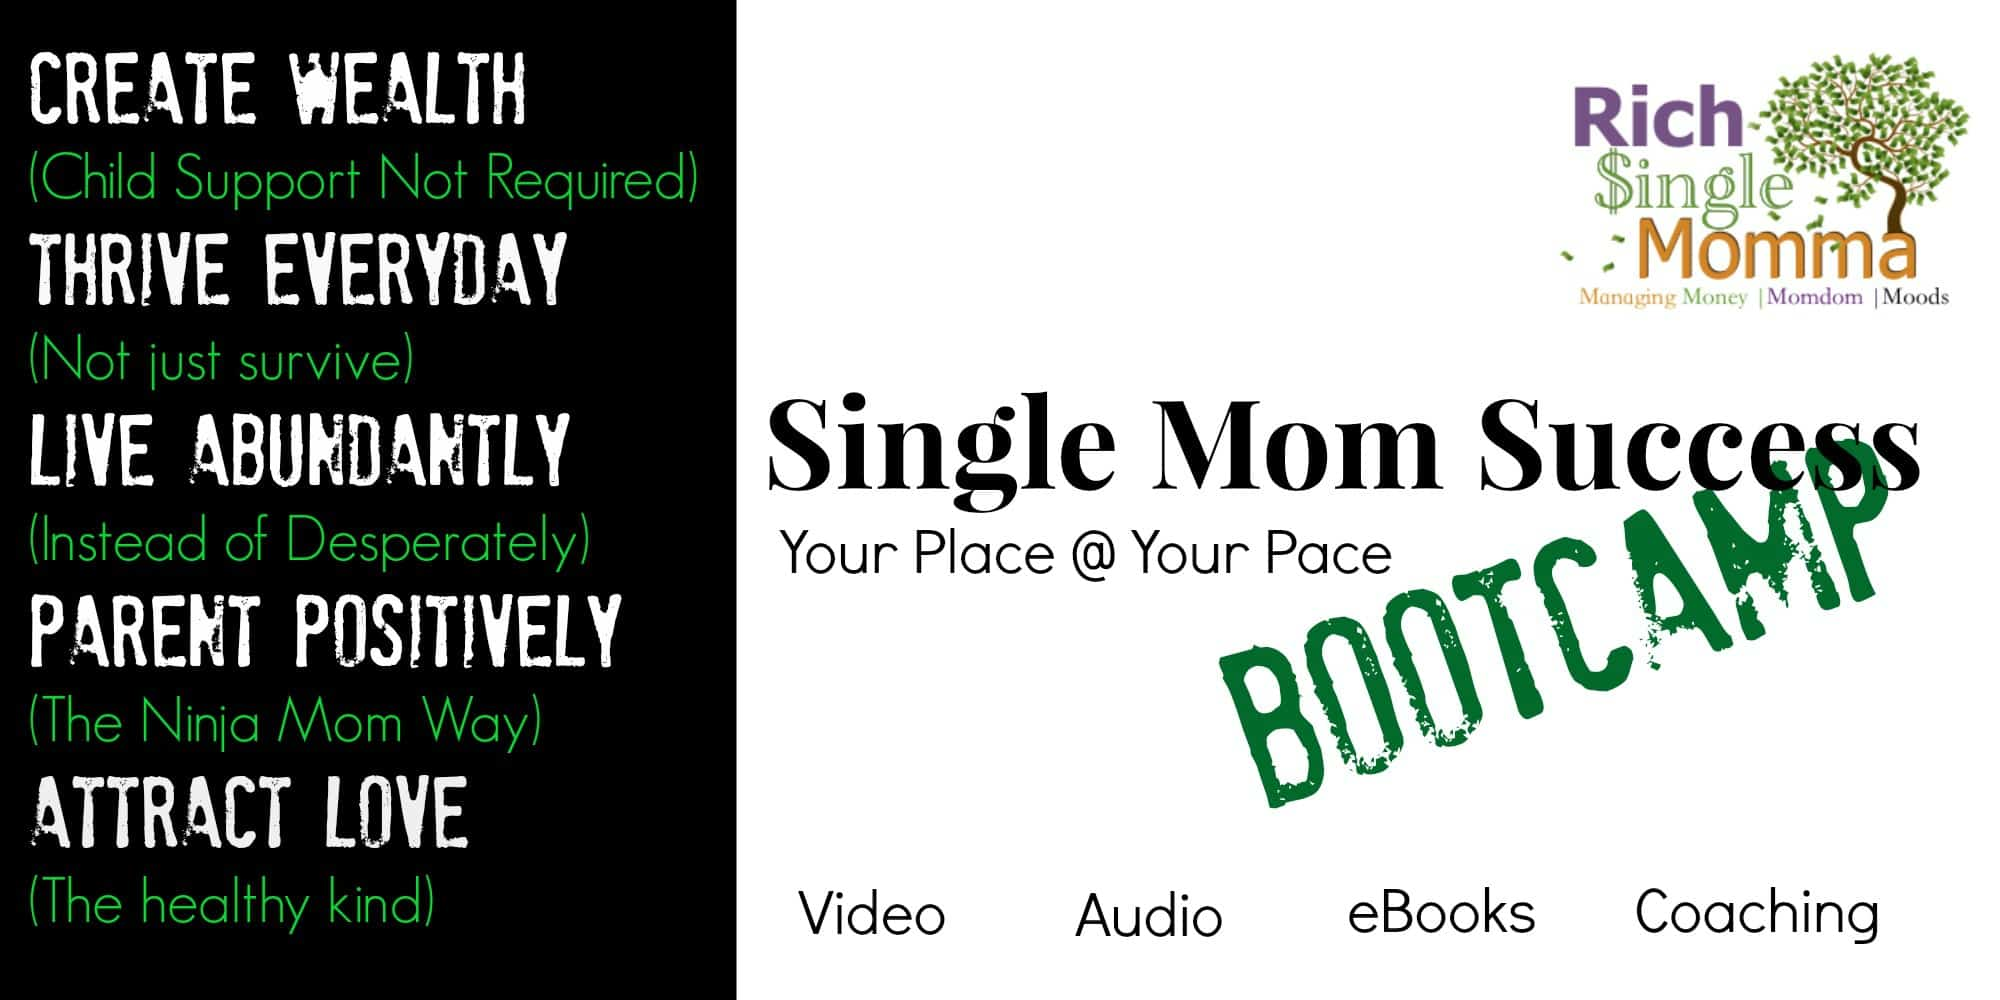 single mom success bootcamp for positive single moms who are ready to thrive, be successful and leave a lasting legacy for their kids